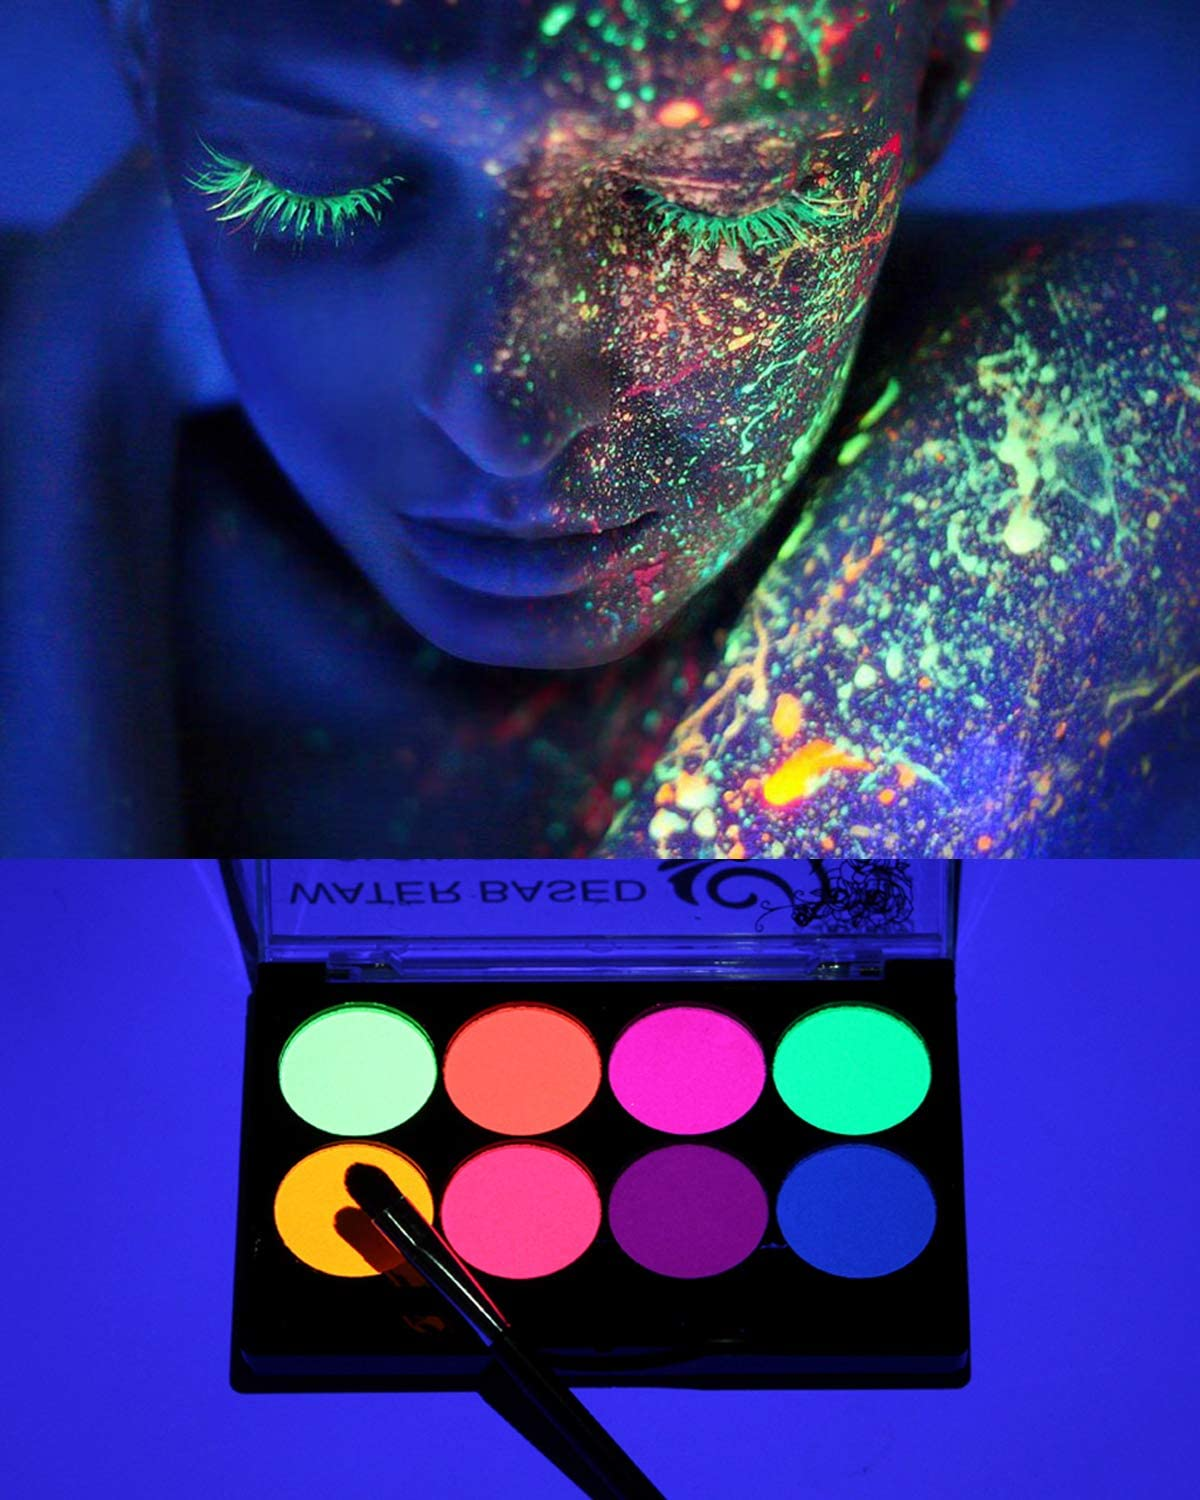 Amazon Com Uv Face Paint Kit Neon Fluorescent Body Painting 8 Bright Colors Water Based Black Light Make Up For Kids Adults Professional Halloween Projects Glow Parties Costumes Theater Special Festivals